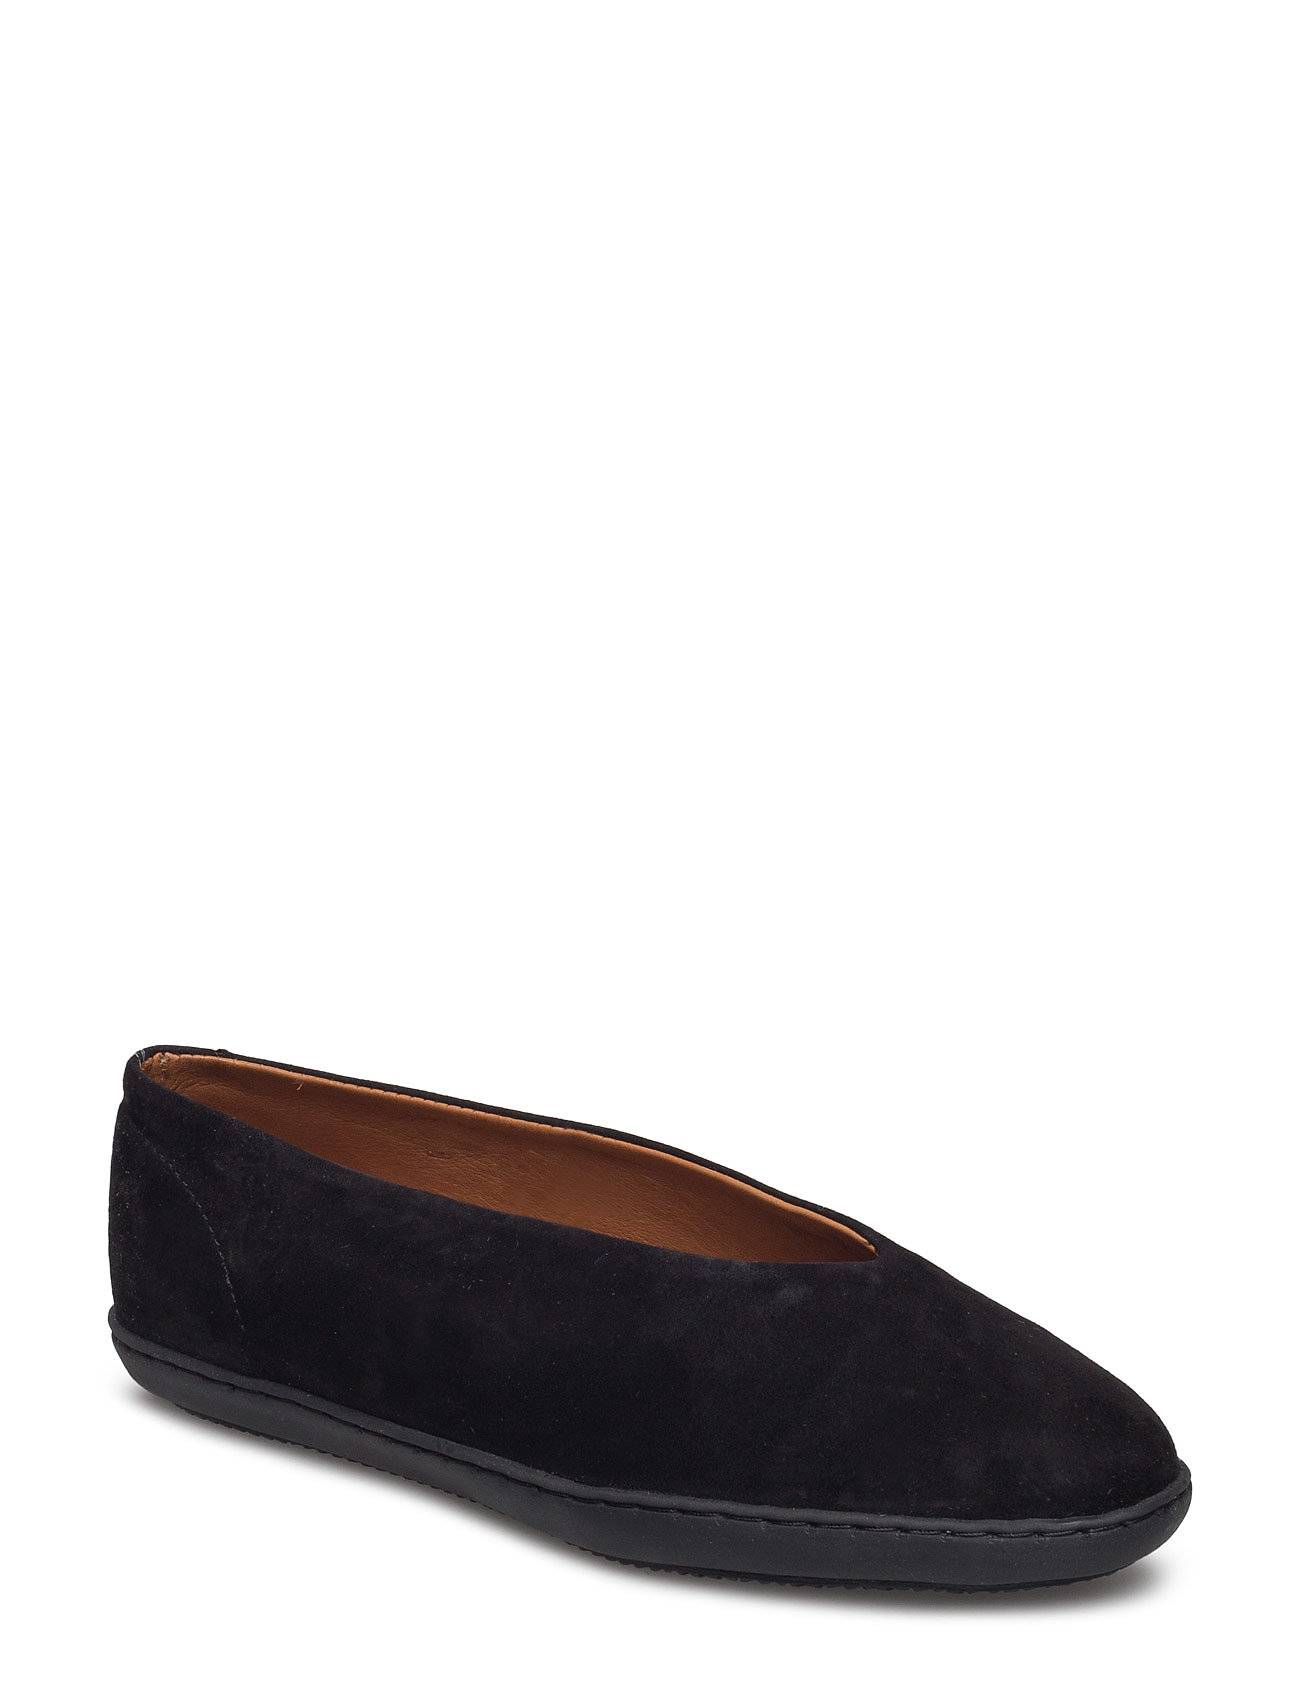 RODEBJER Truth Suede